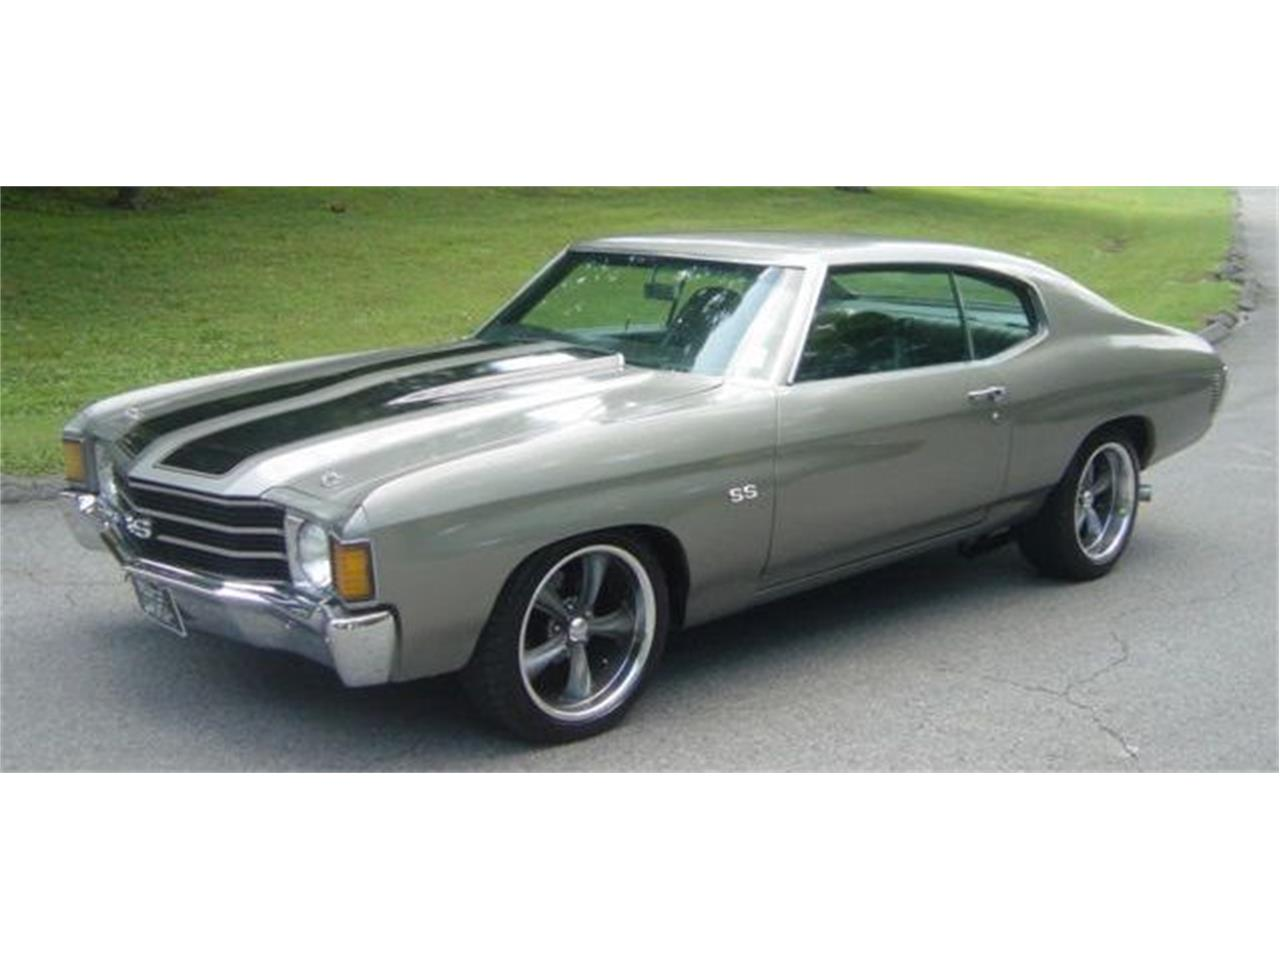 Large Picture of Classic 1972 Chevelle located in Tennessee - $19,900.00 - NRMT